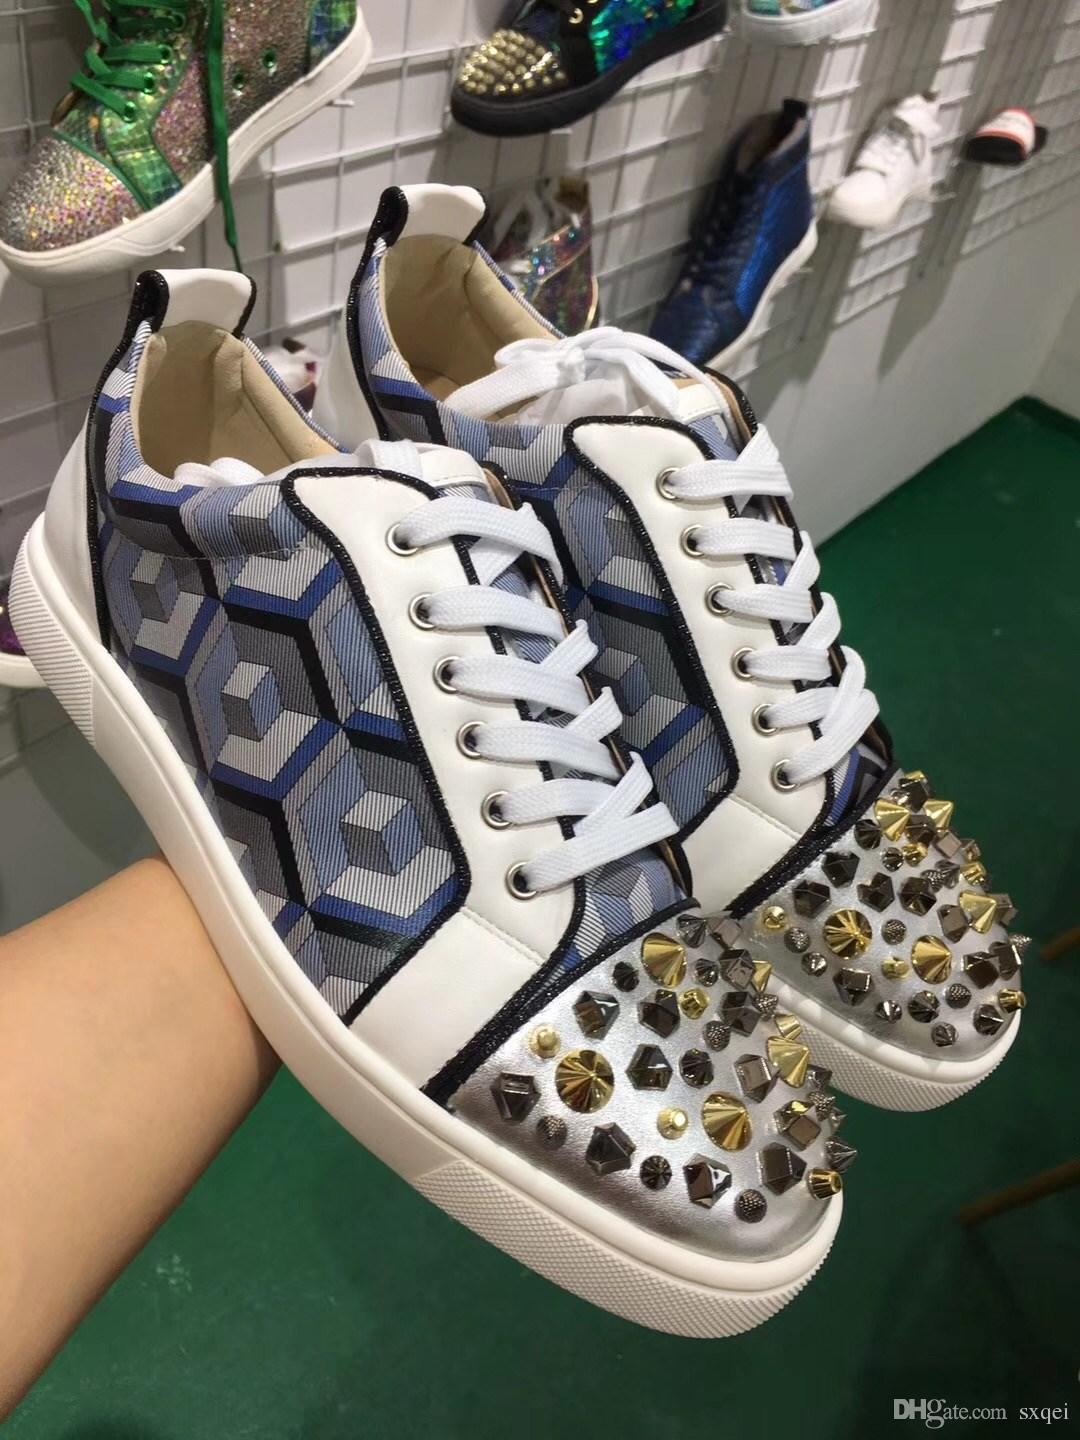 a2acc94640c6 New Leopard Print Glitter Men S Shoes Cow Leather Low Top Red Bottom  Sneakers Unisex Street Wear Brand Casual Flat Shoes Blue Shoes Clogs For Women  From ...